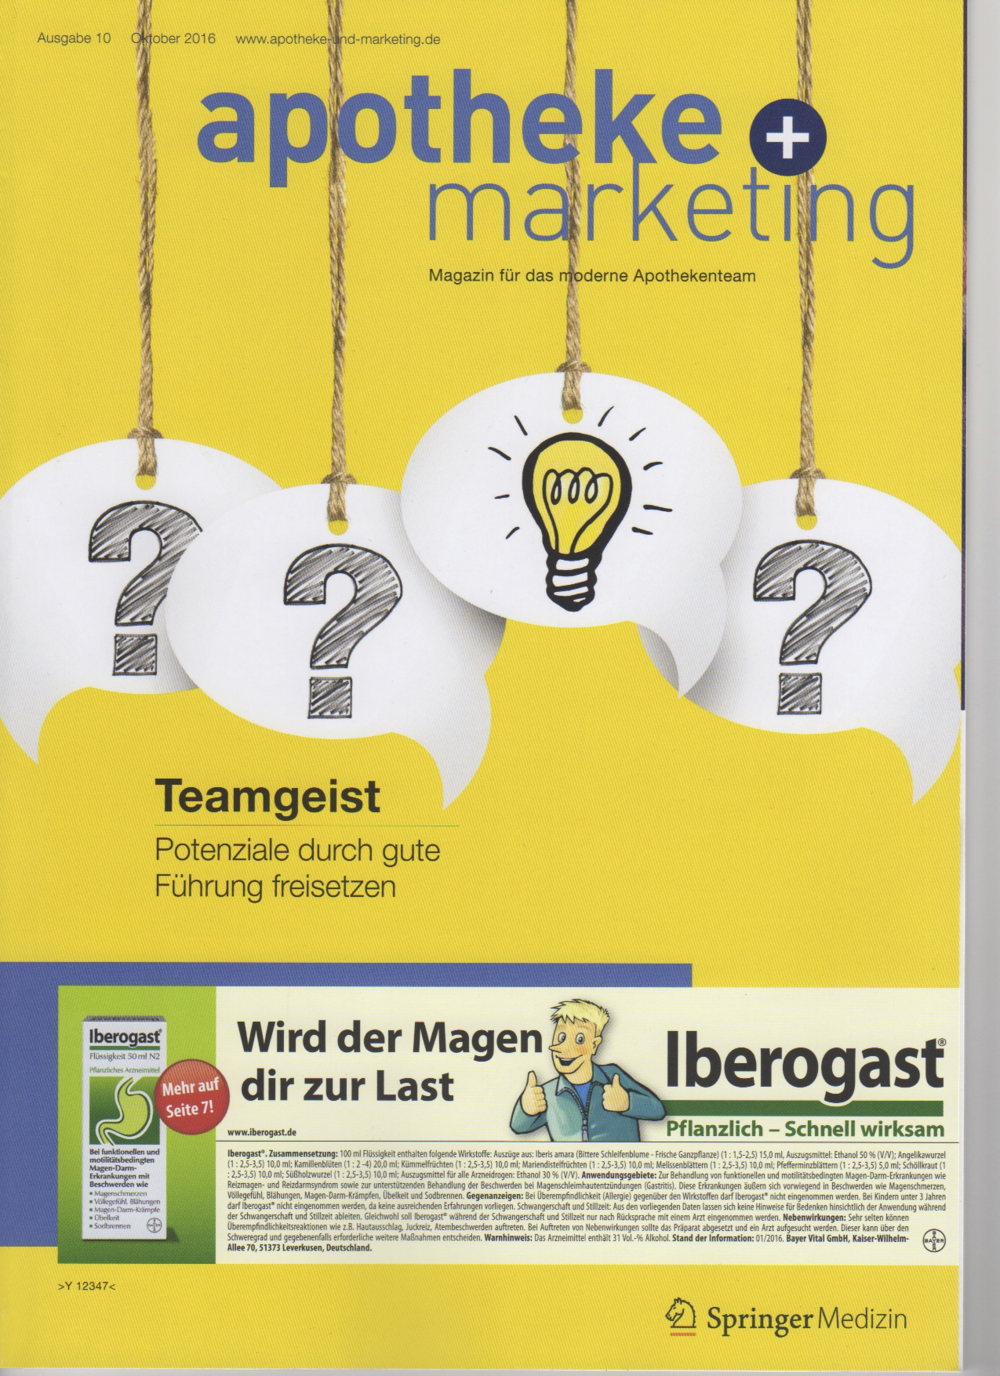 Apotheke_und_Marketing_1.png